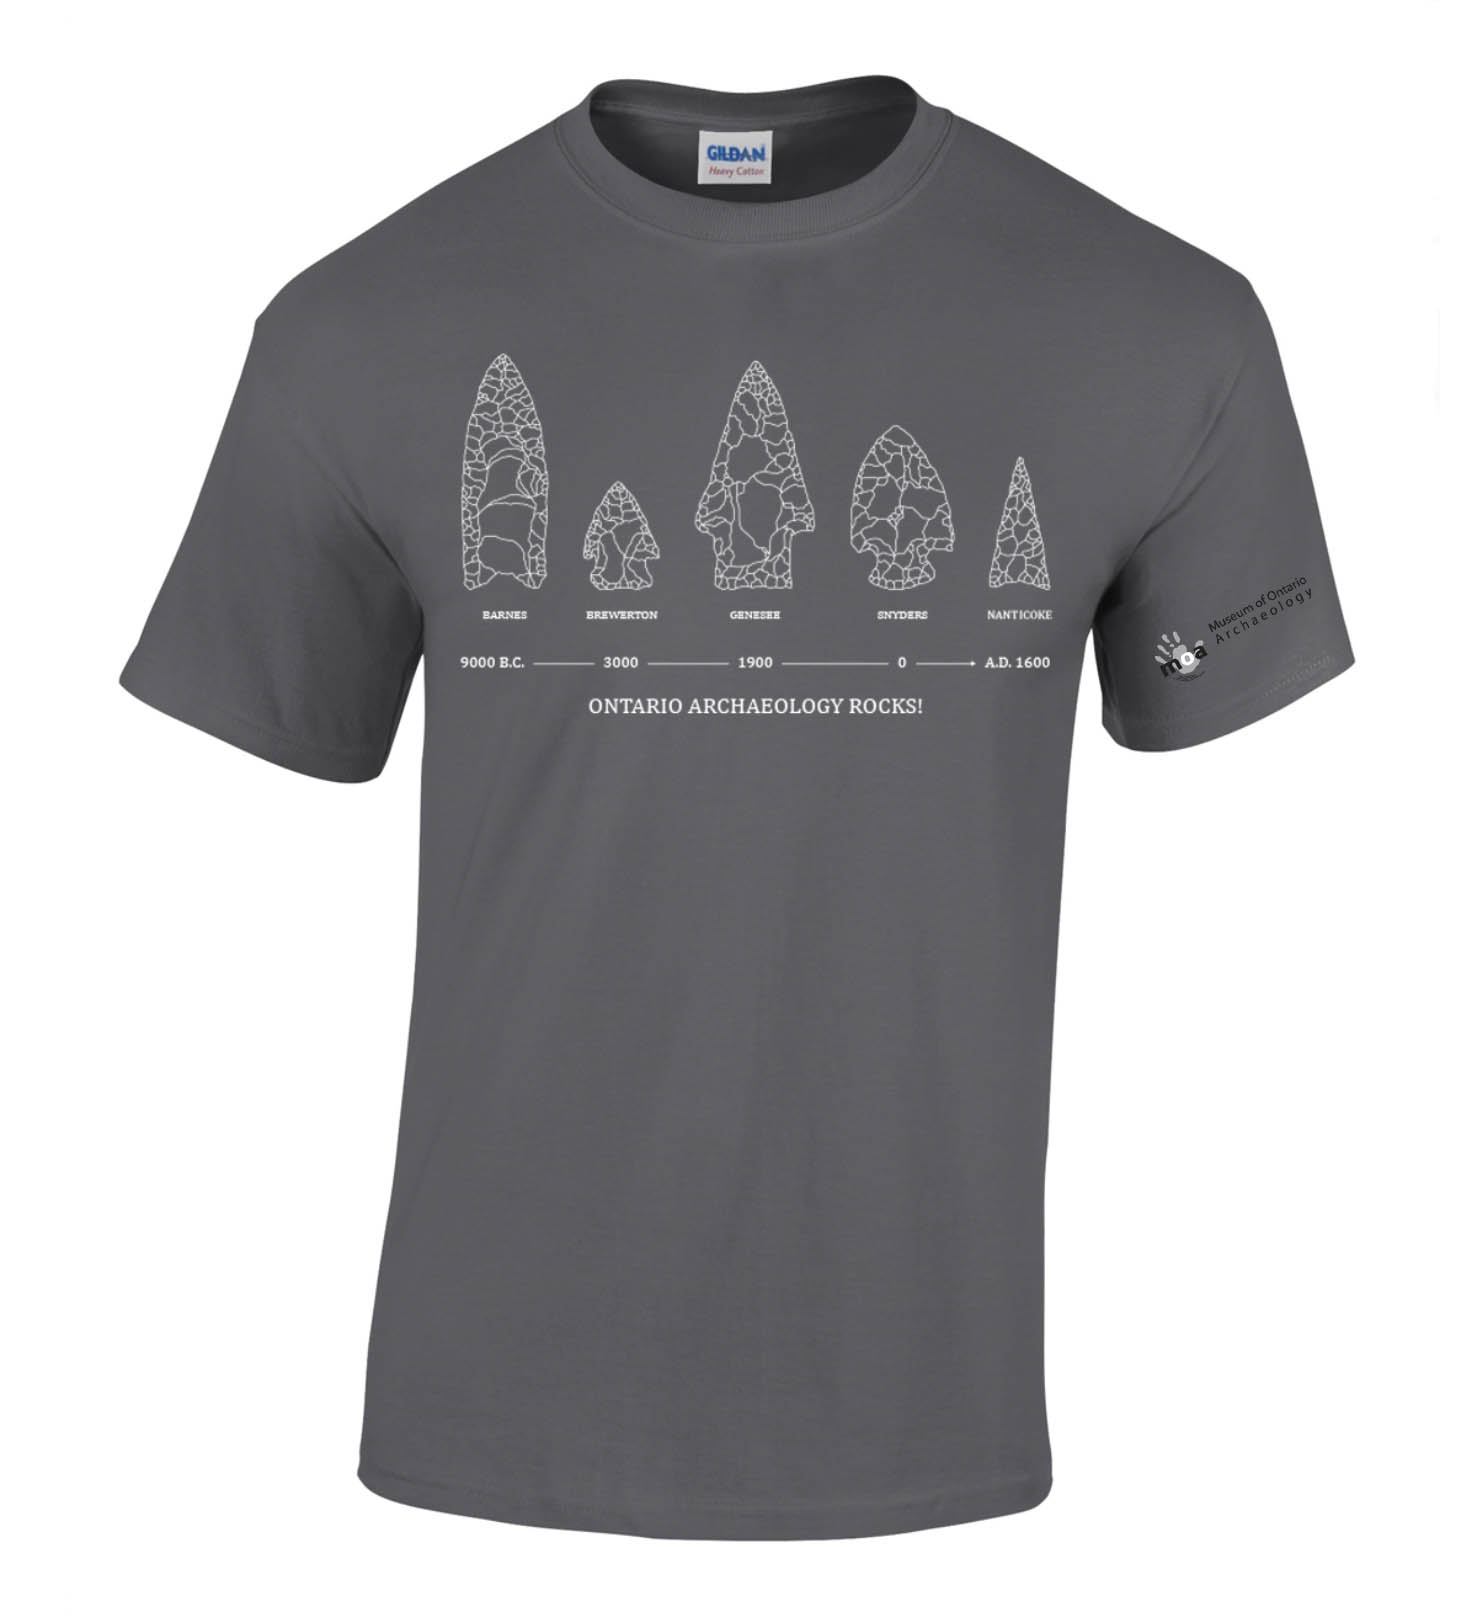 Grey Tshirt featuring five projectile points and the slogan What's the point?